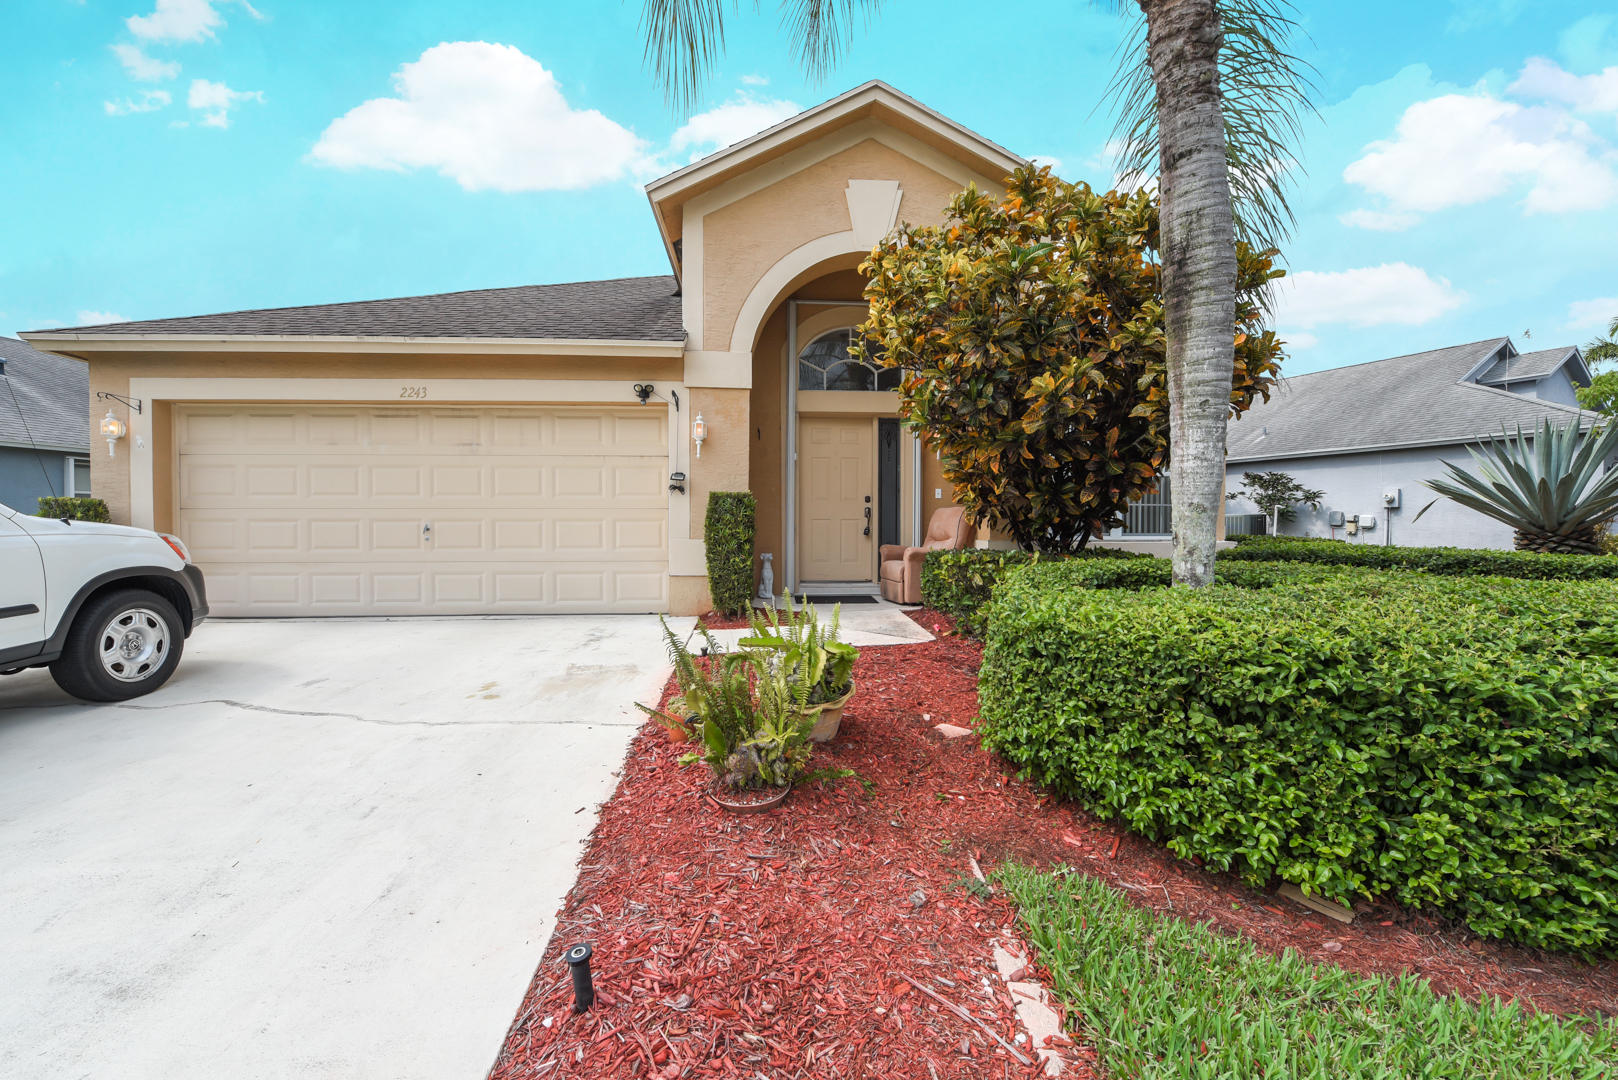 Home for sale in The Soundings Greenacres Florida